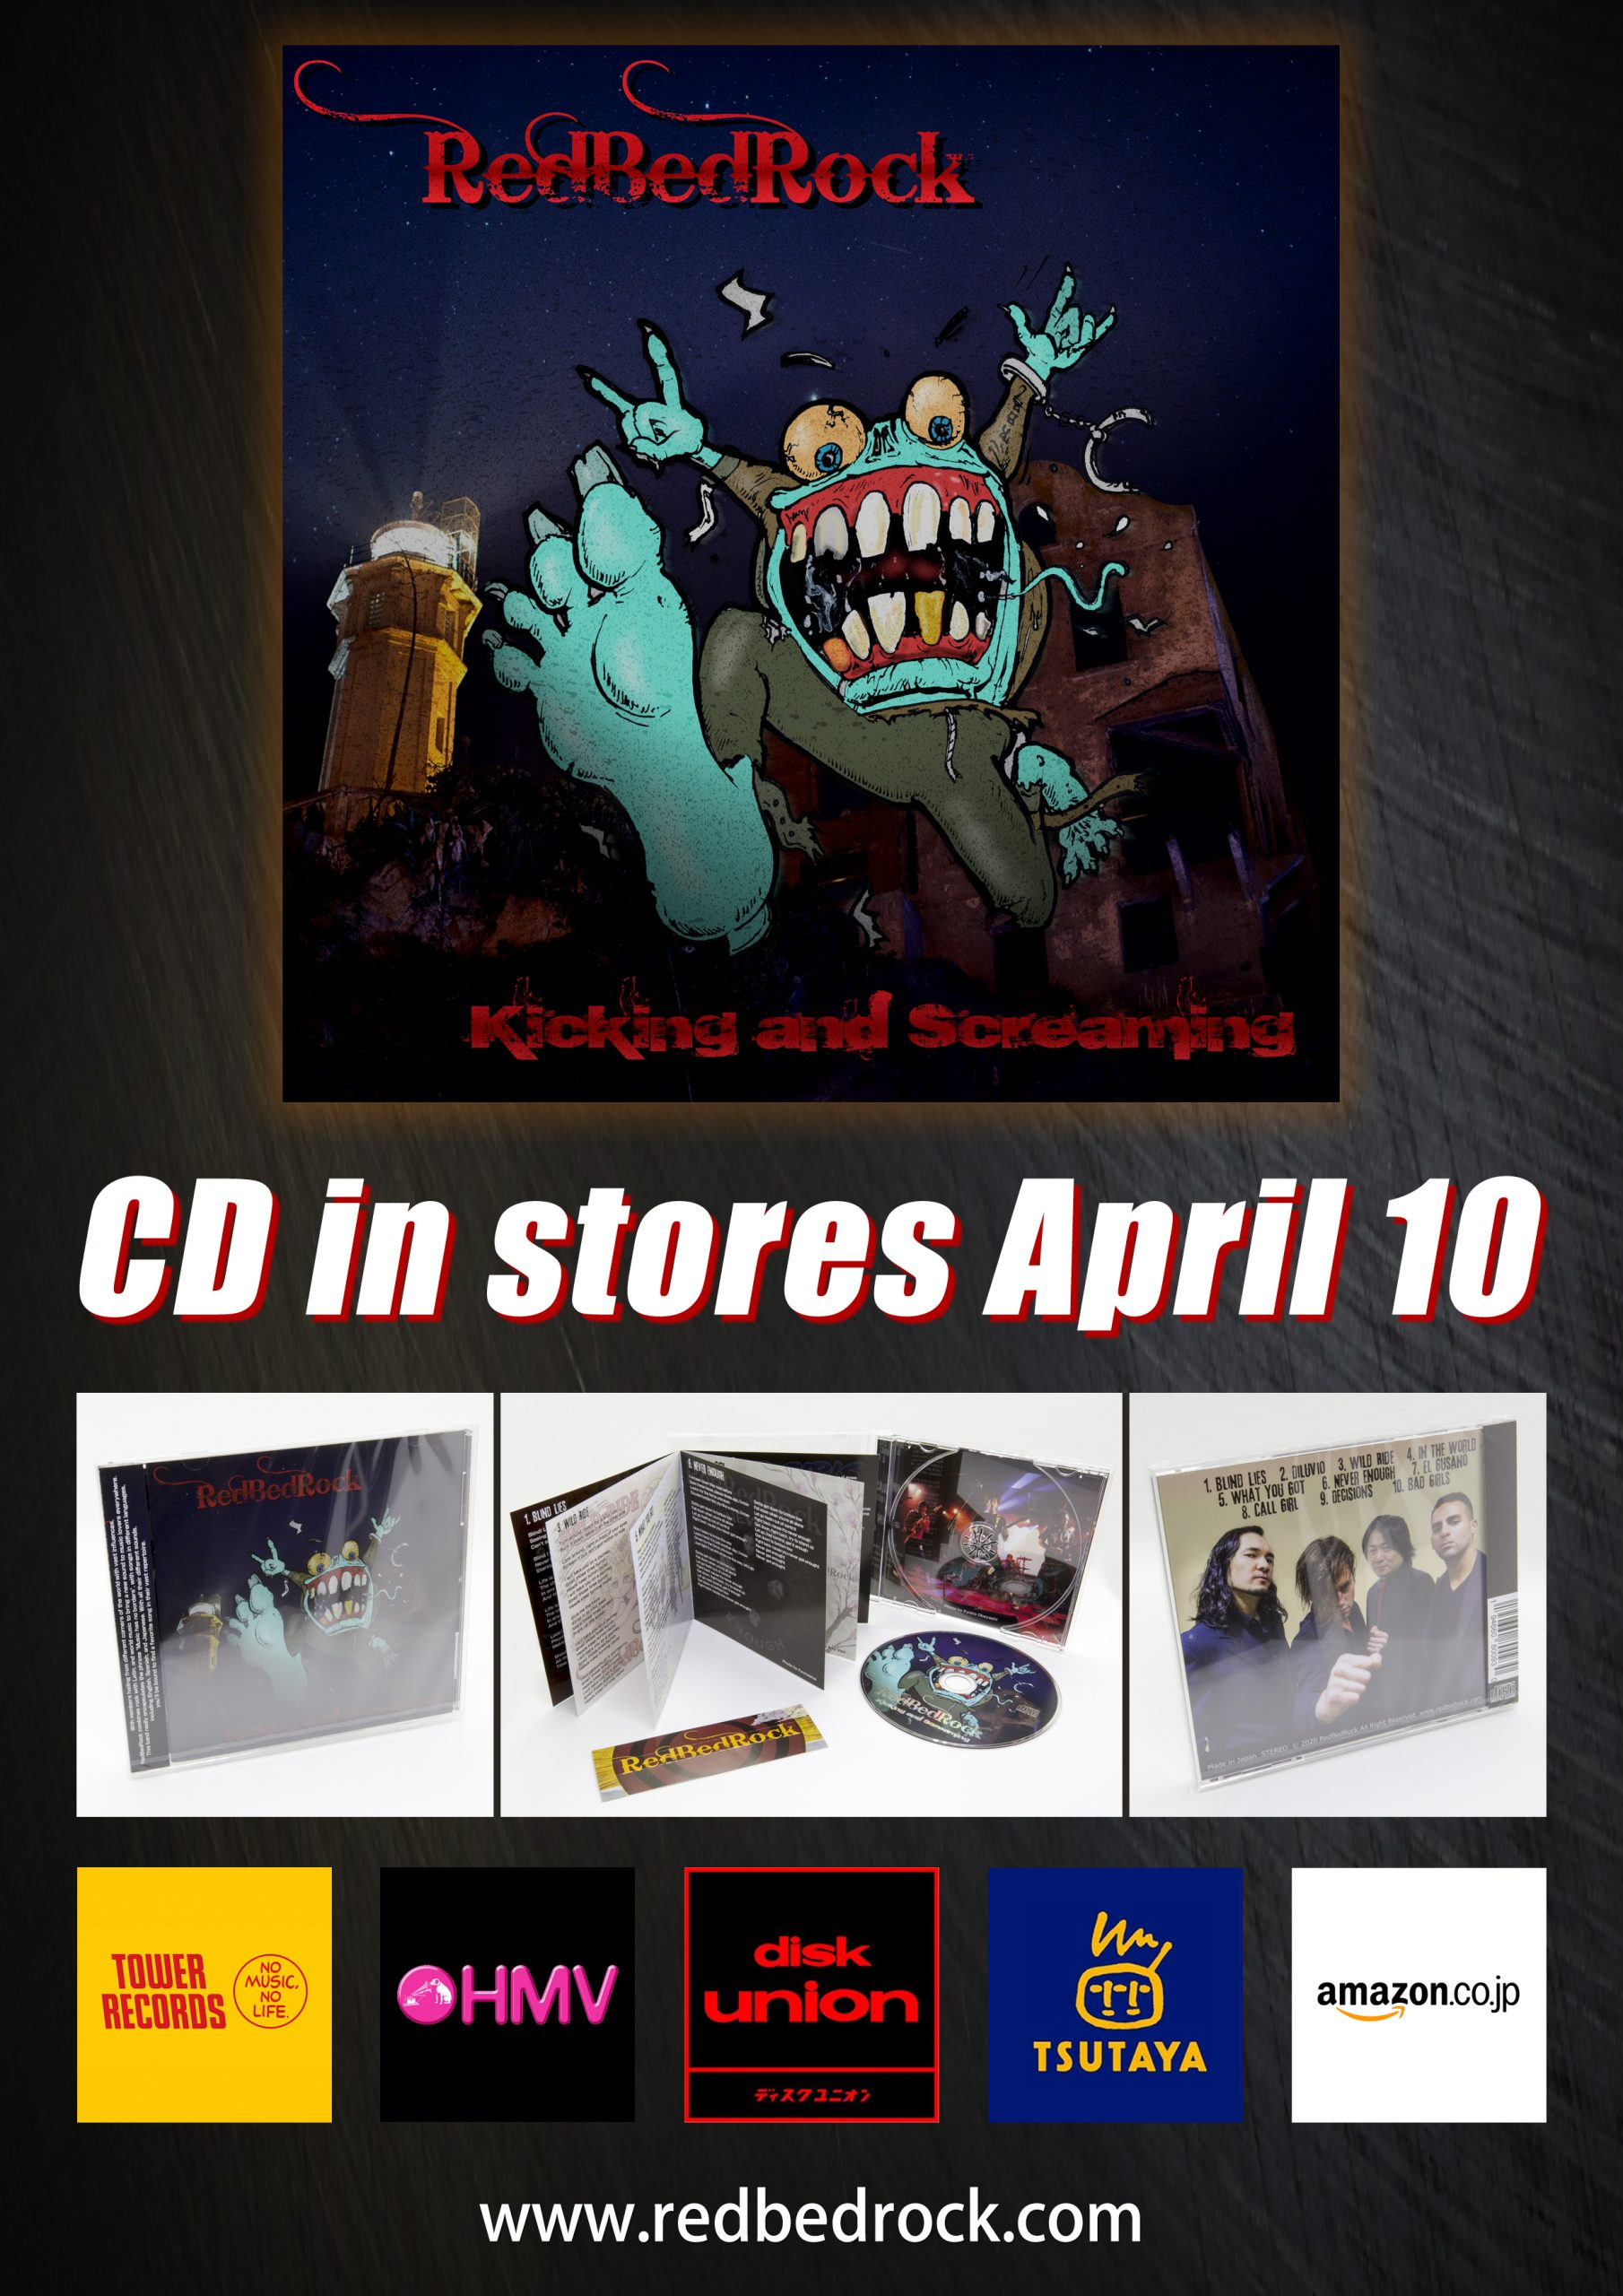 CD in stores April 10